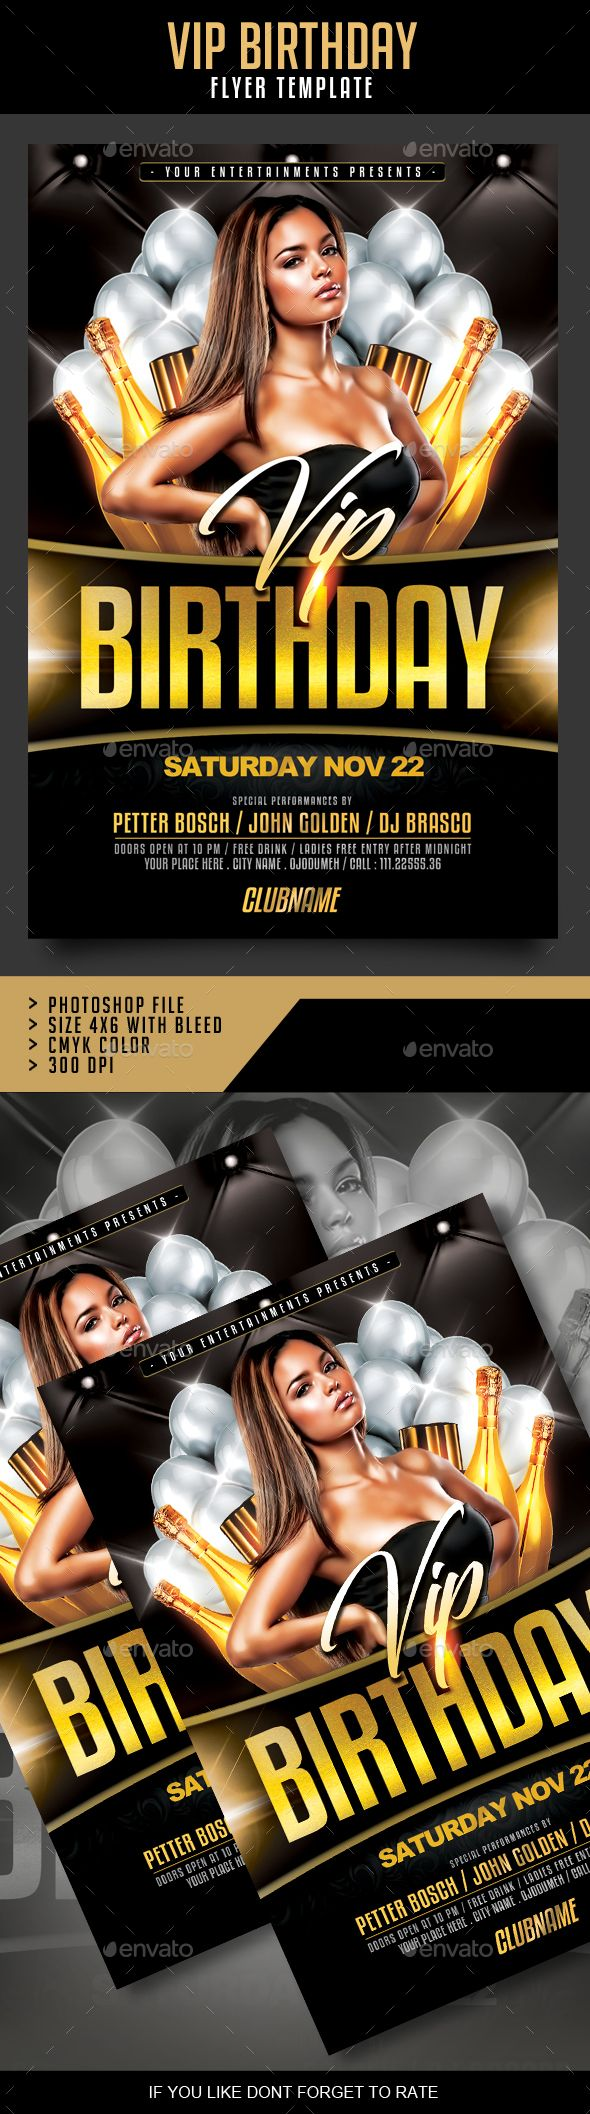 vip birthday flyer events flyers flyer templates pinterest